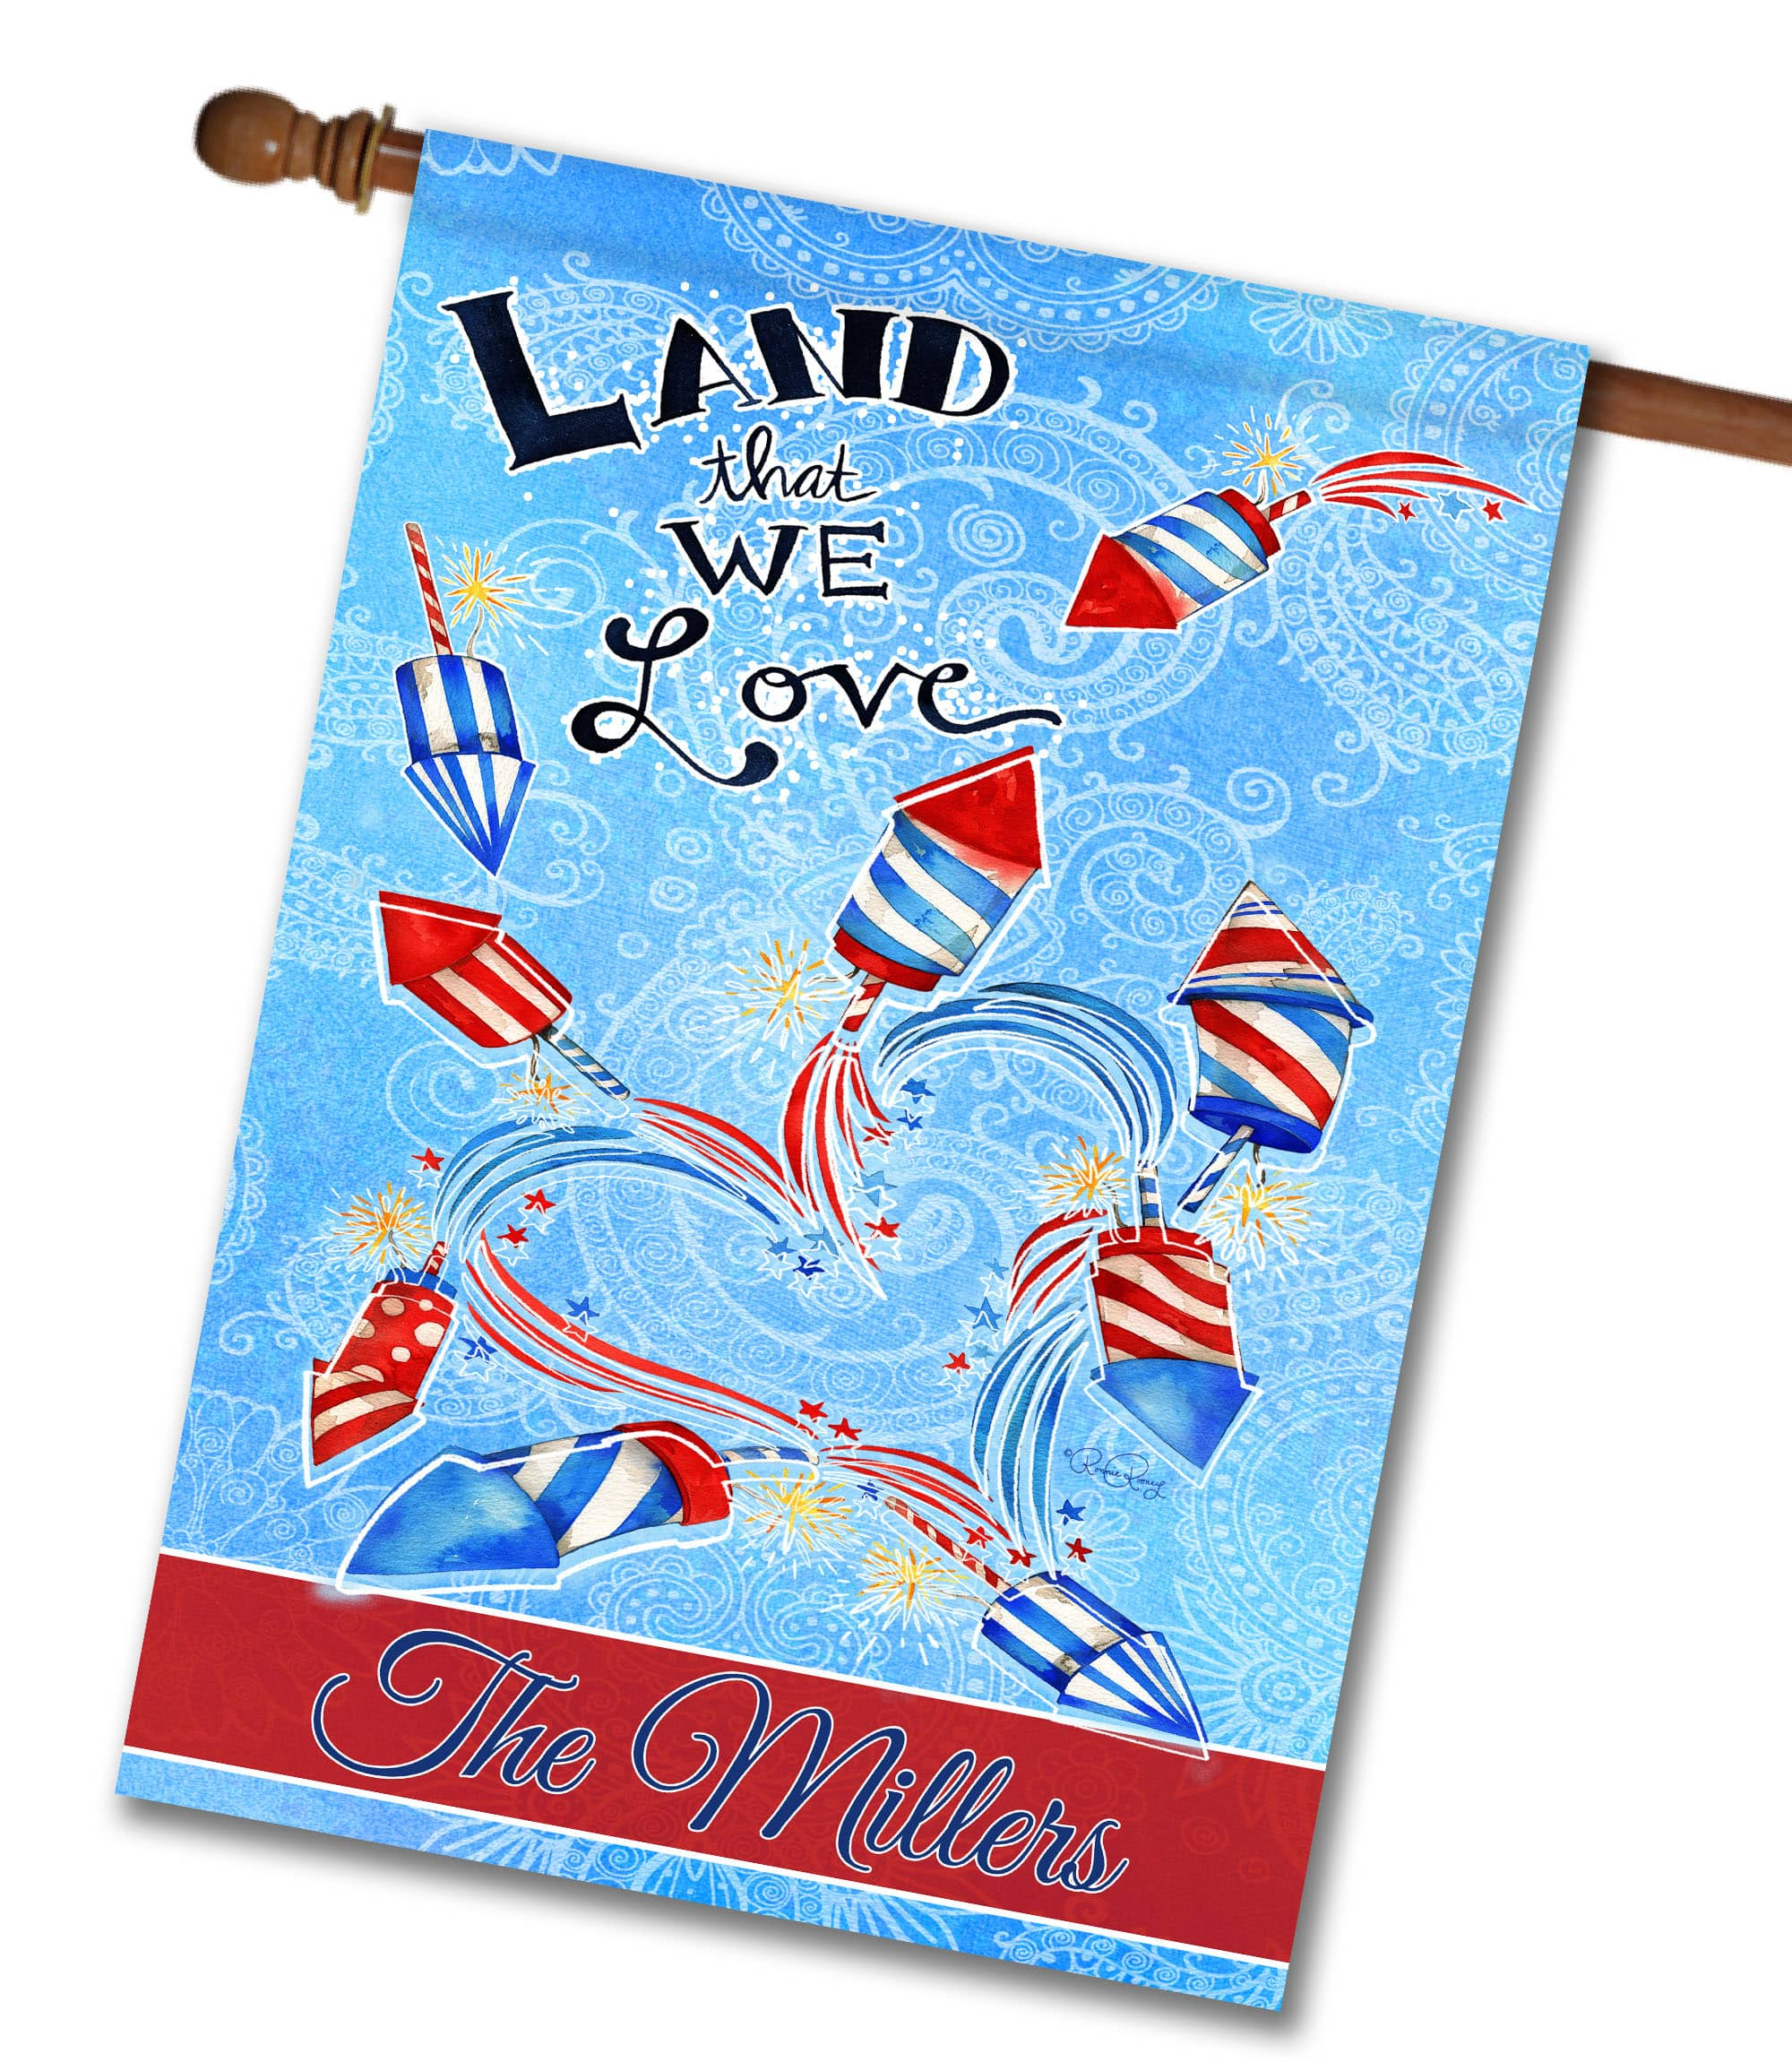 "Personalized Land That We Love Fireworks - House Flag - 28"" x 40"""